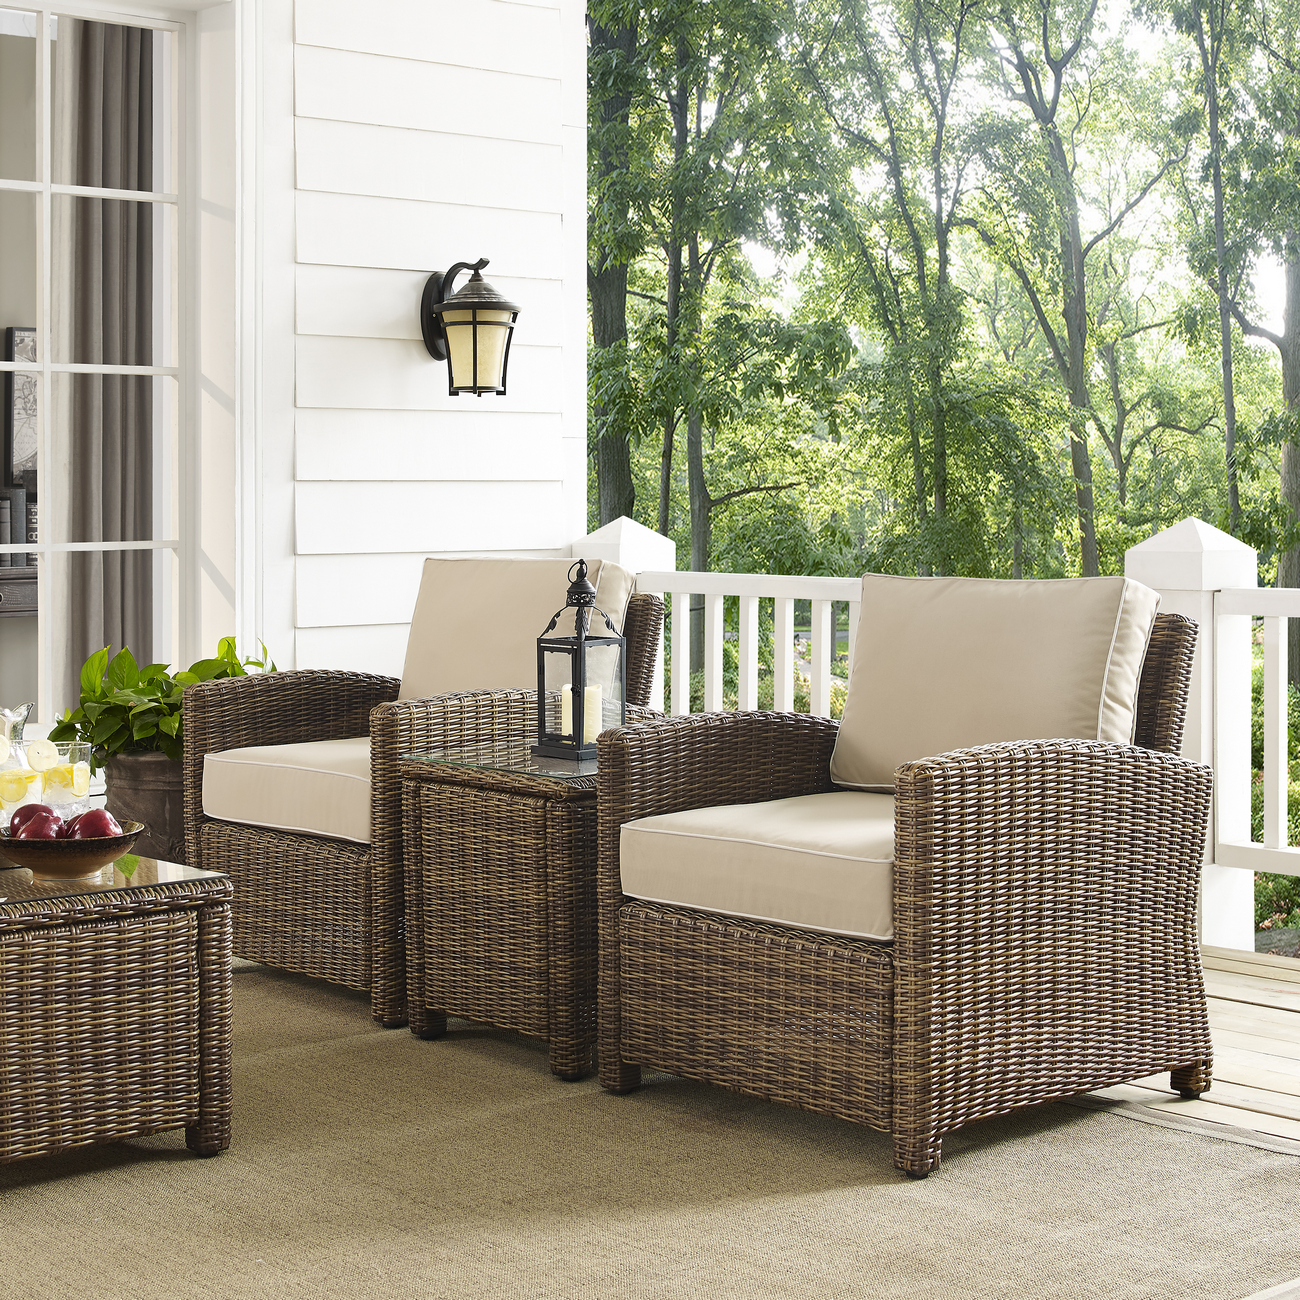 Crosley Brands Furniture Conversation Set Outdoor Wicker Sand Photo